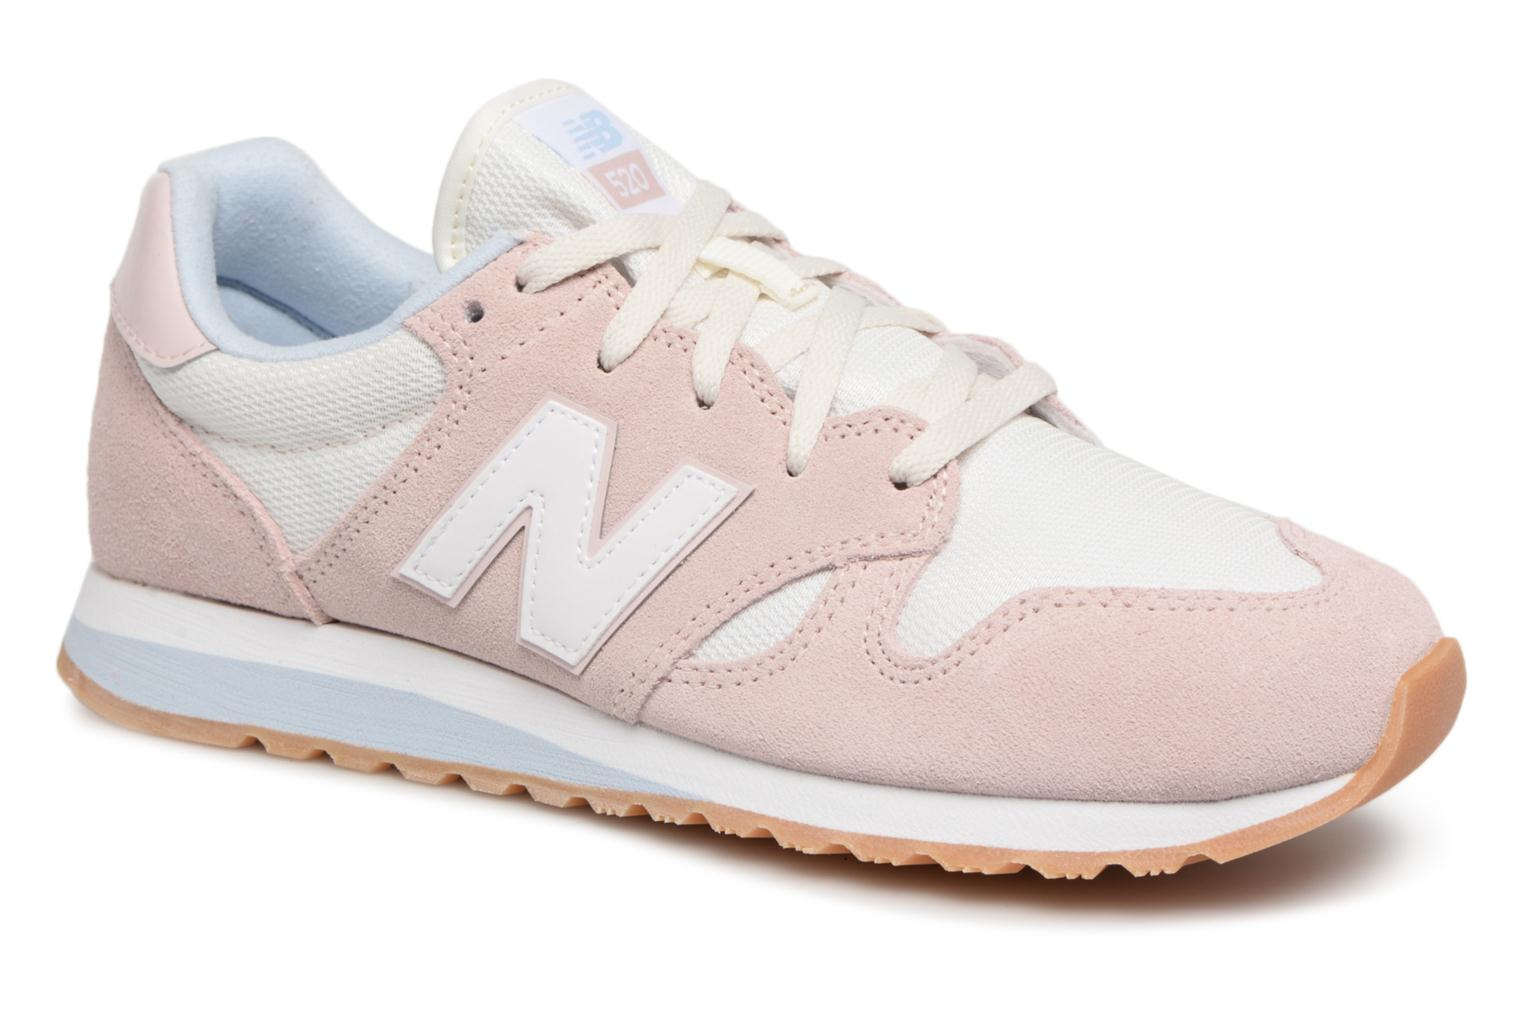 New Balance WL520 (Rose) - Baskets en Más cómodo Chaussures casual sauvages